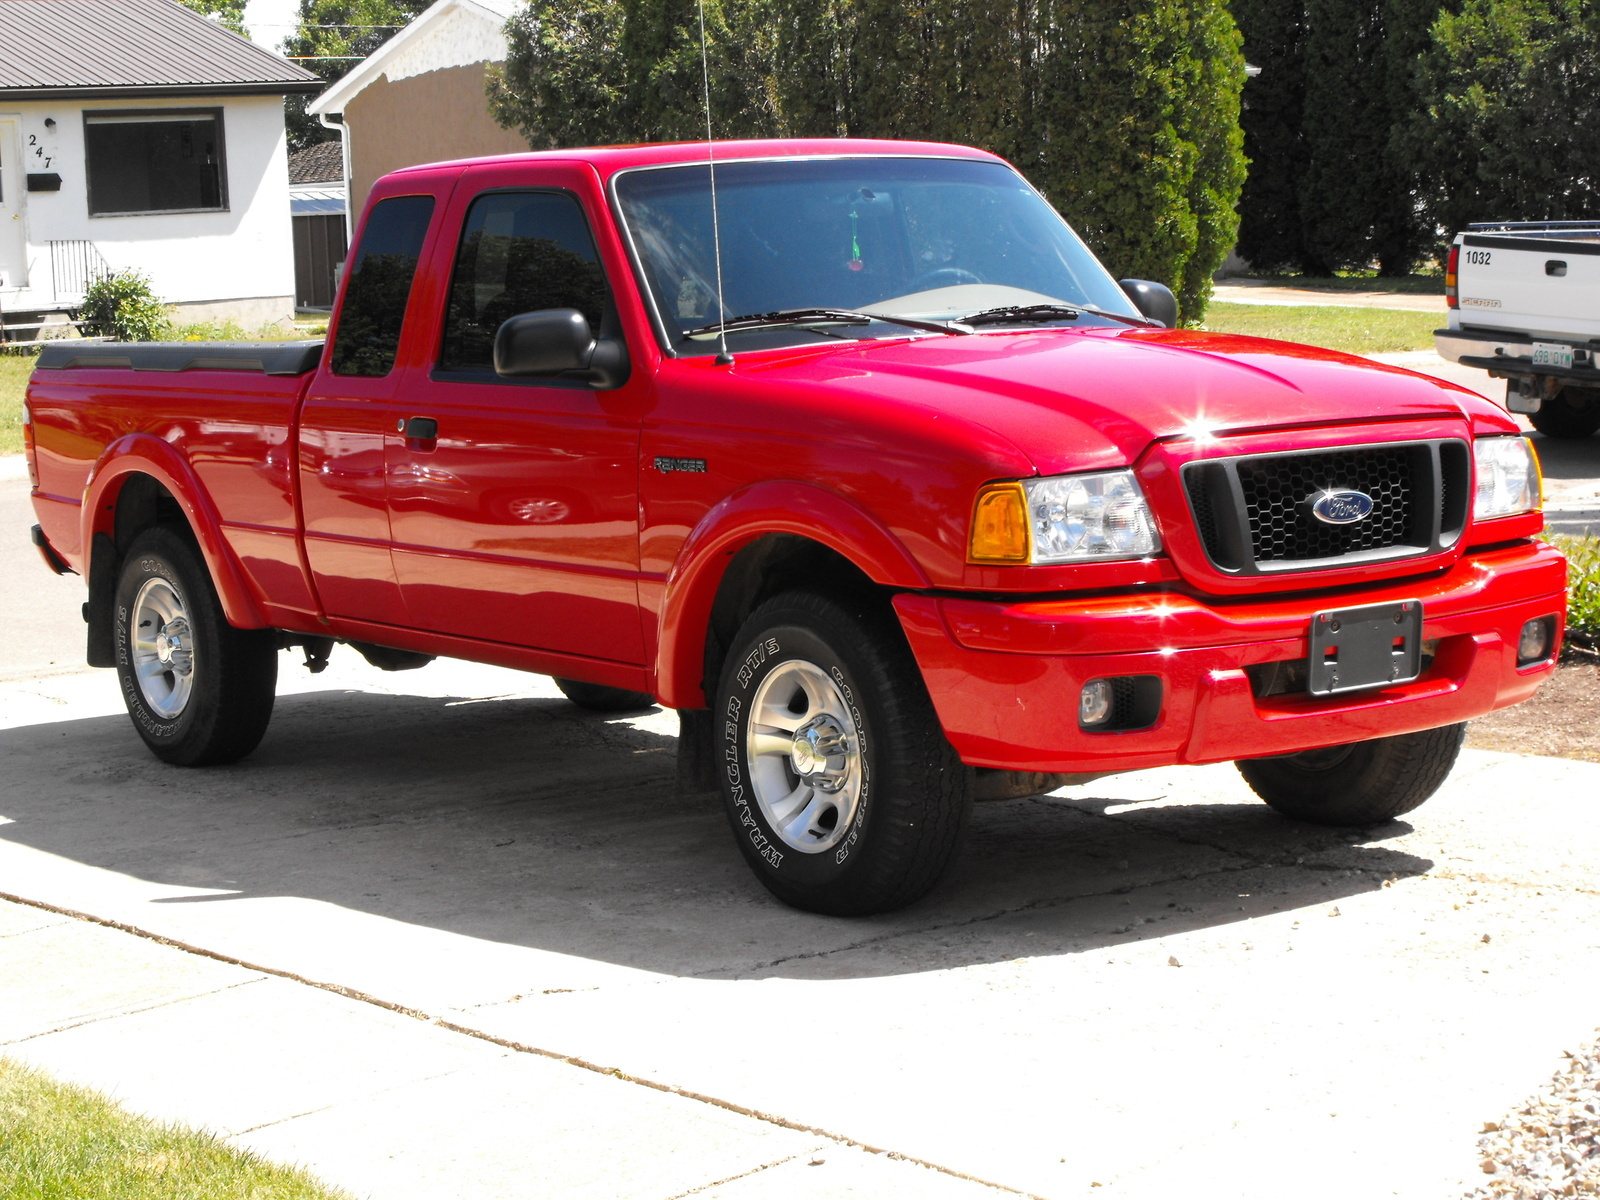 2004 toyota tacoma user reviews cargurus picture of 2004 ford ranger 4 dr edge extended cab sb exterior vanachro Image collections